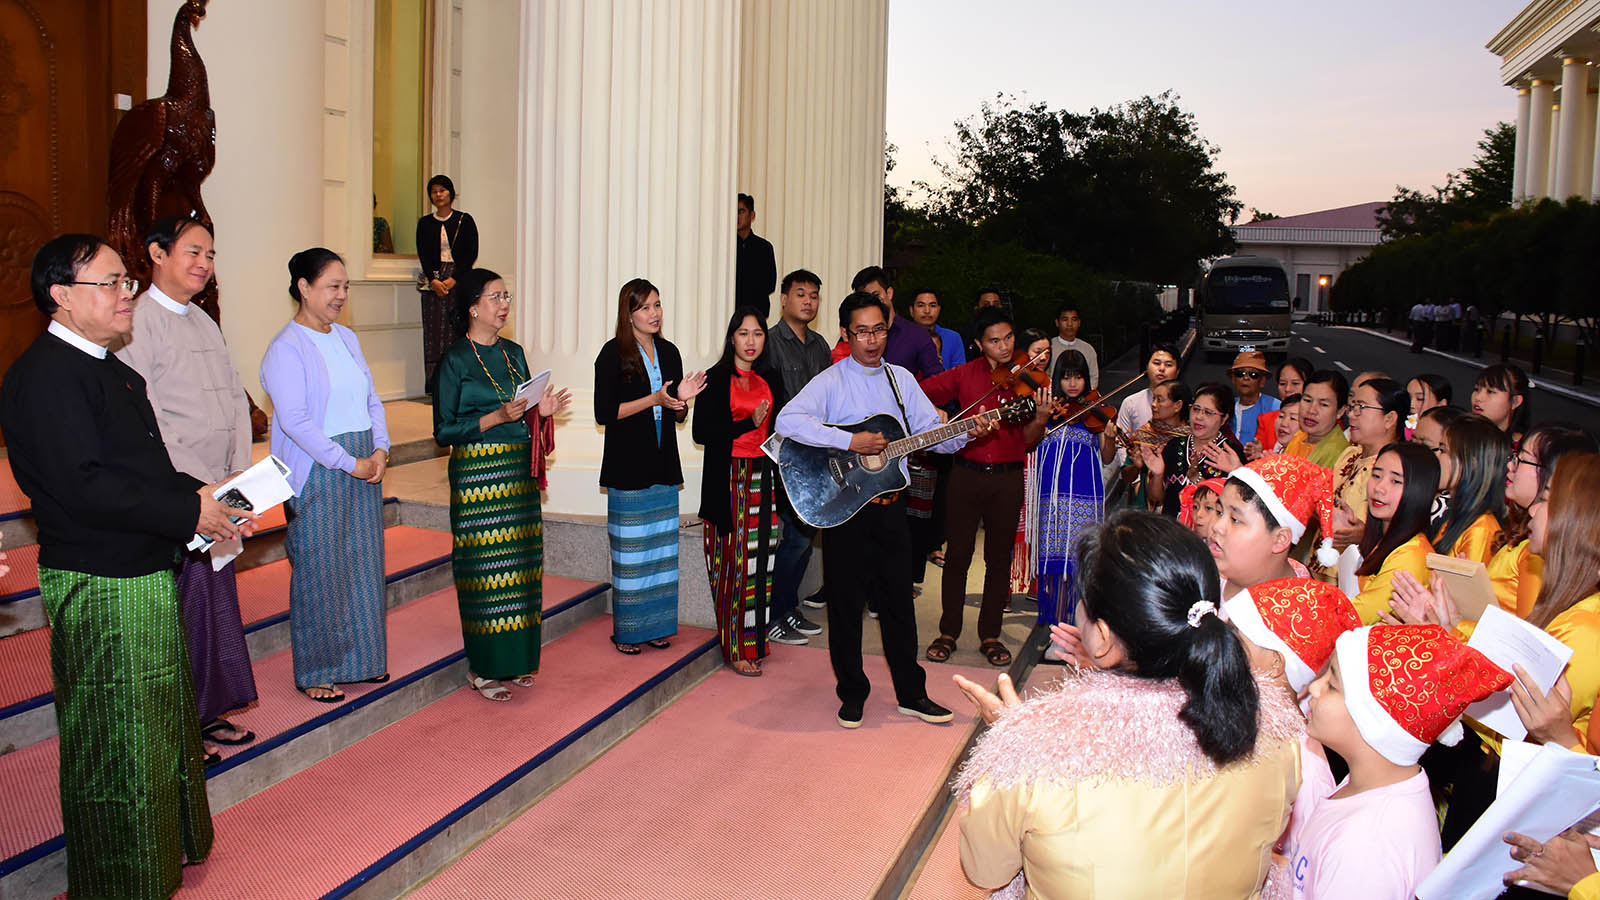 Pre-Christmas and prayers singing Christmas songs for President U Win Myint, First Lady Daw Cho Cho and family at the Presidential Palace in Nay Pyi Taw yesterday. Photo: MNA